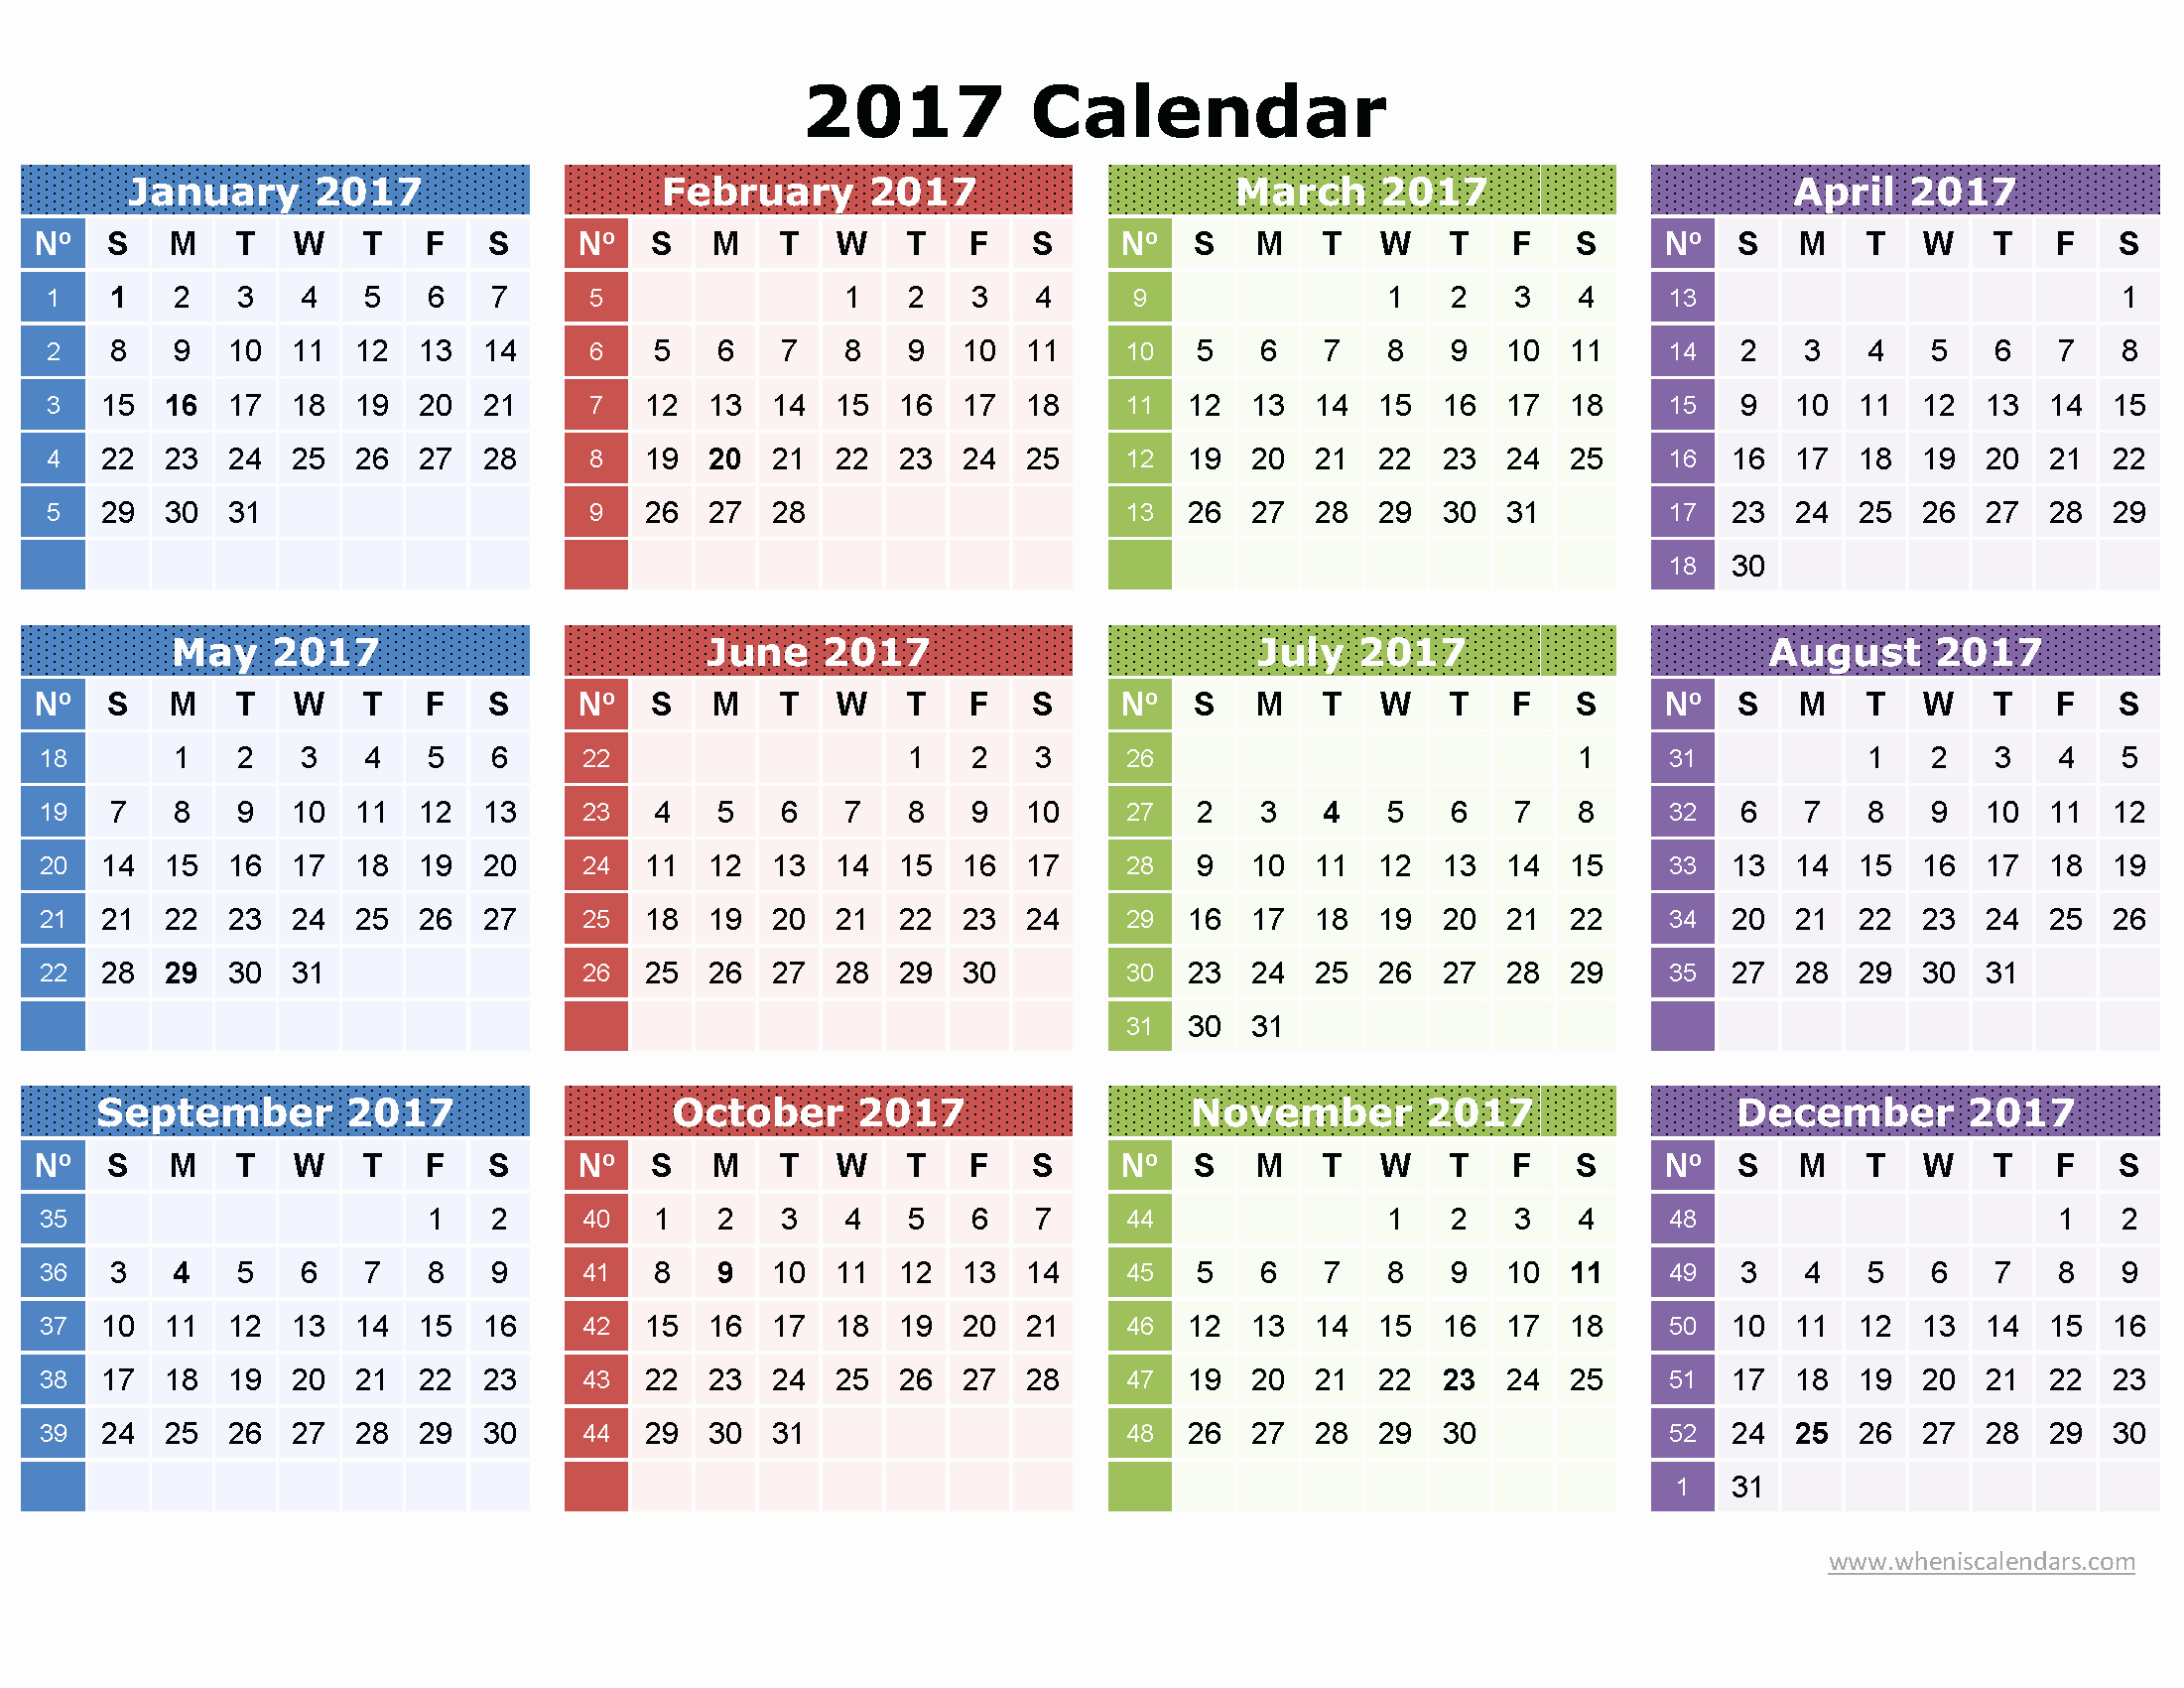 2017 Calendar Month by Month Best Of 2017 Year Calendar Wallpaper Download Free 2017 Calendar